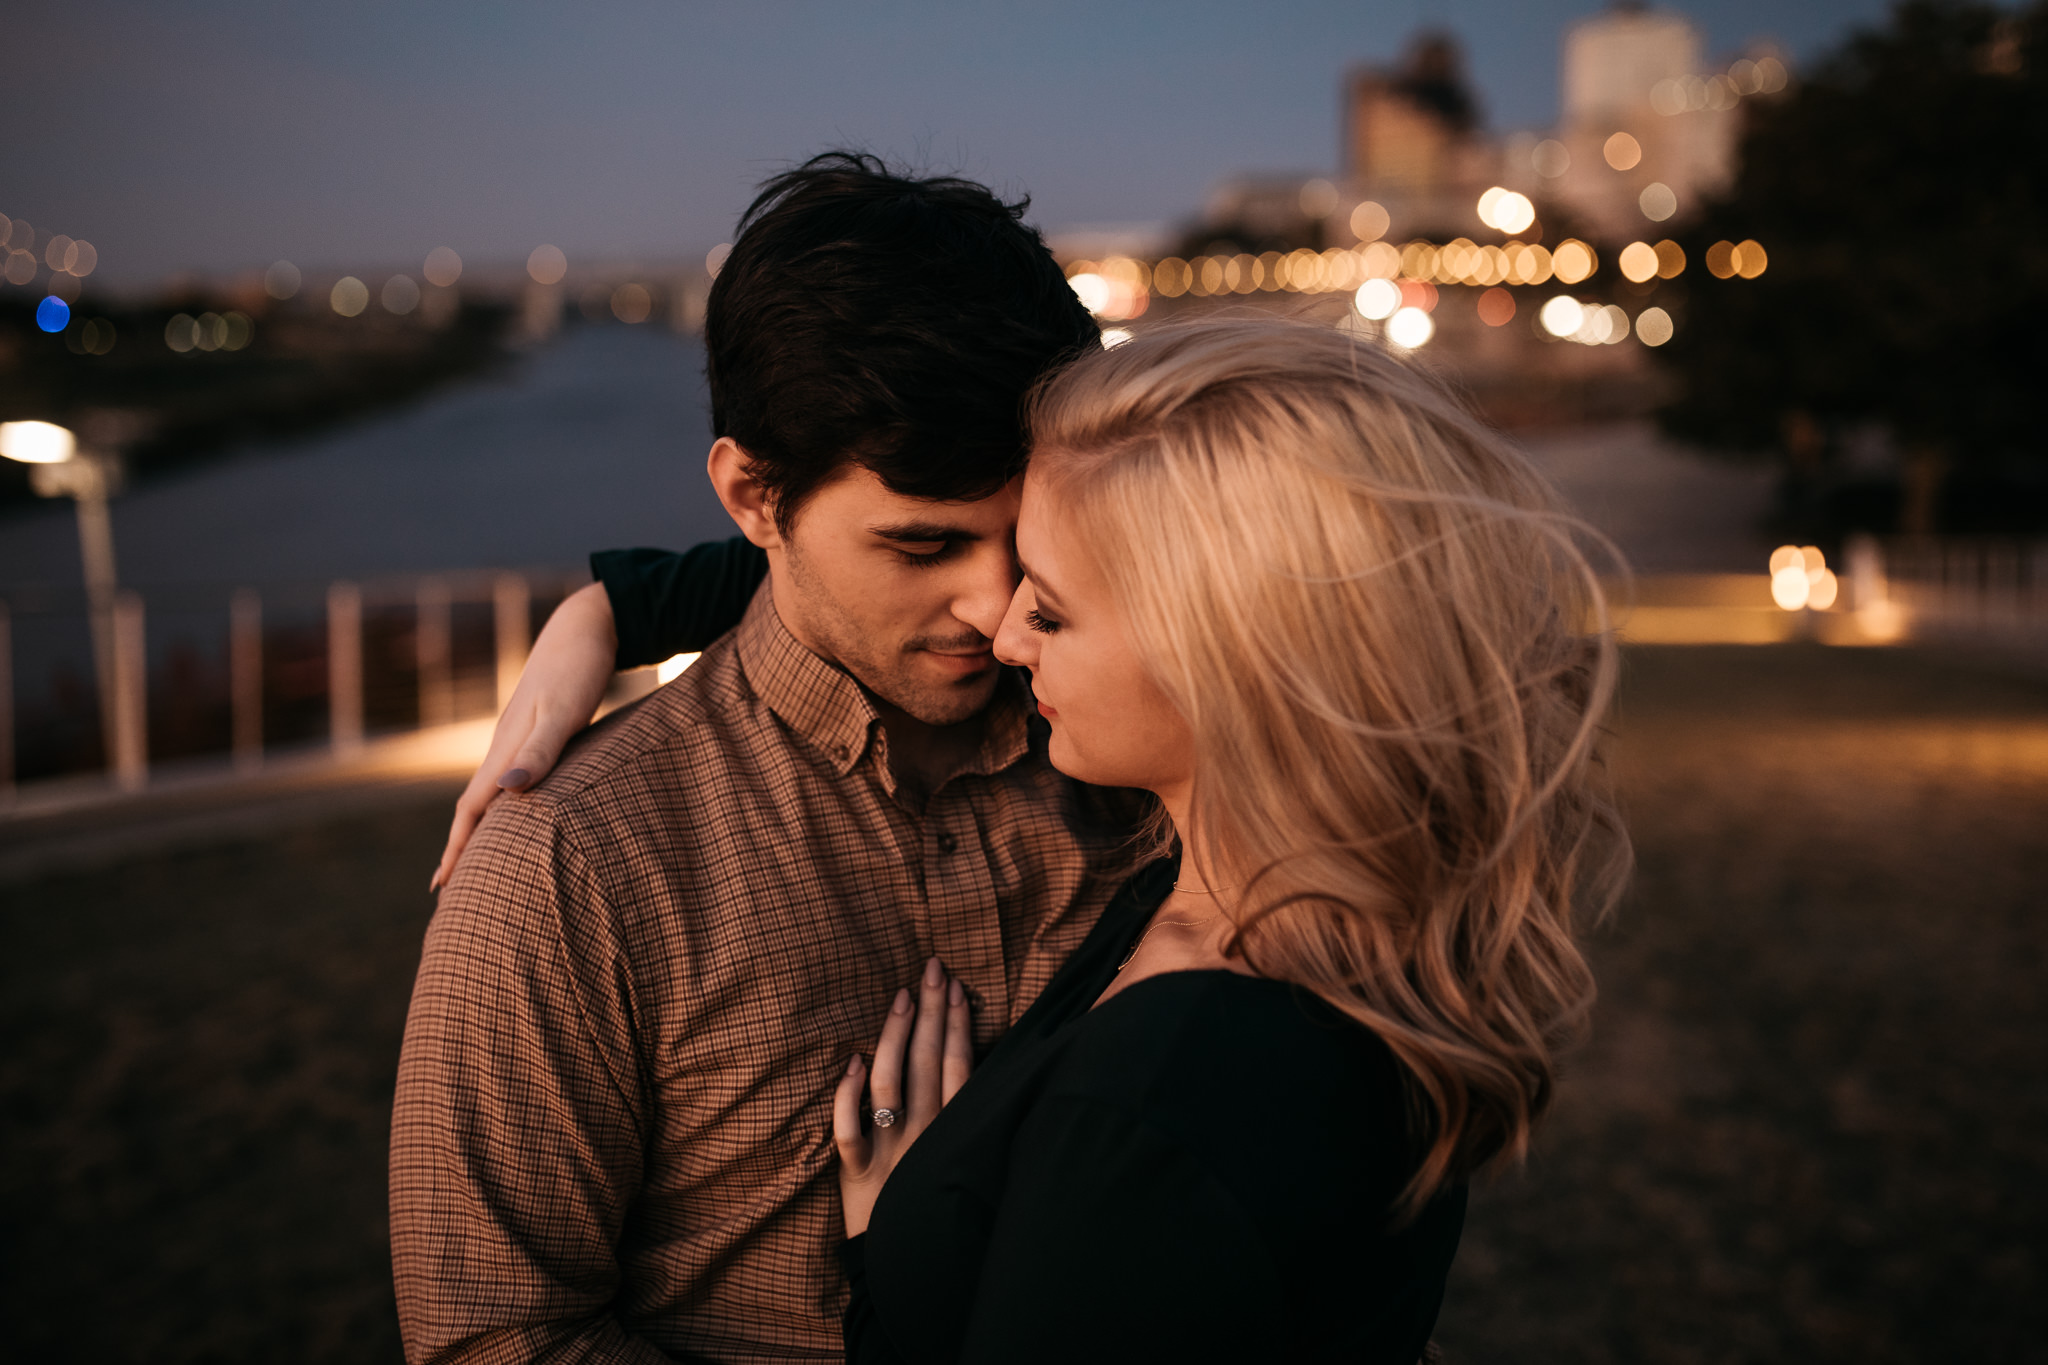 memphis-wedding-photographer-cassie-cook-photography-cafe-keough-engagement-photoshoot-coffee-engagement-55.jpg